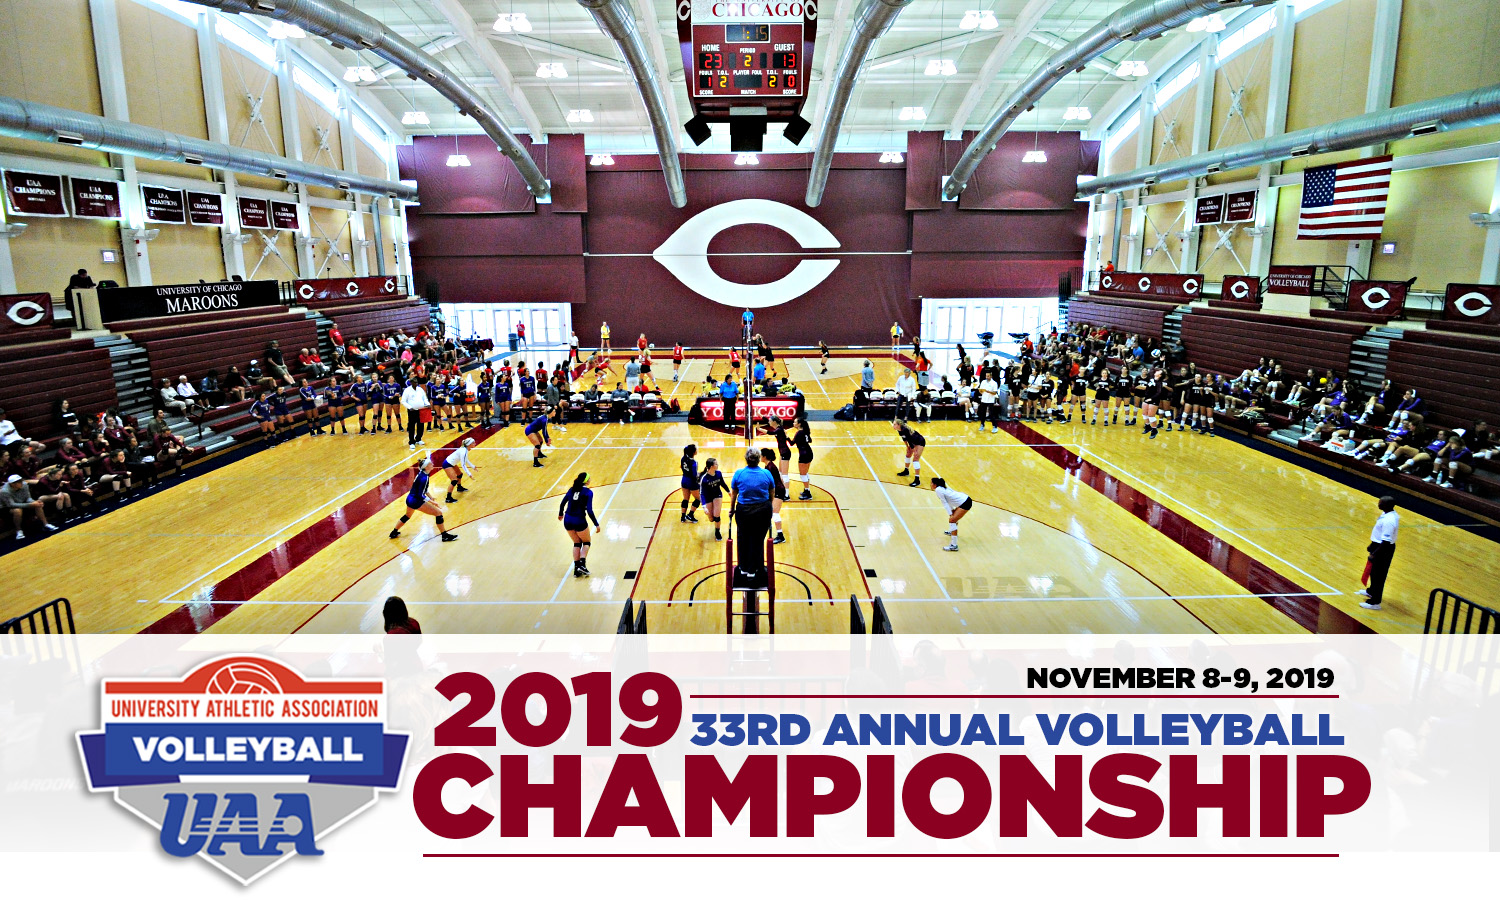 2019 University Athletic Association Volleyball Championship